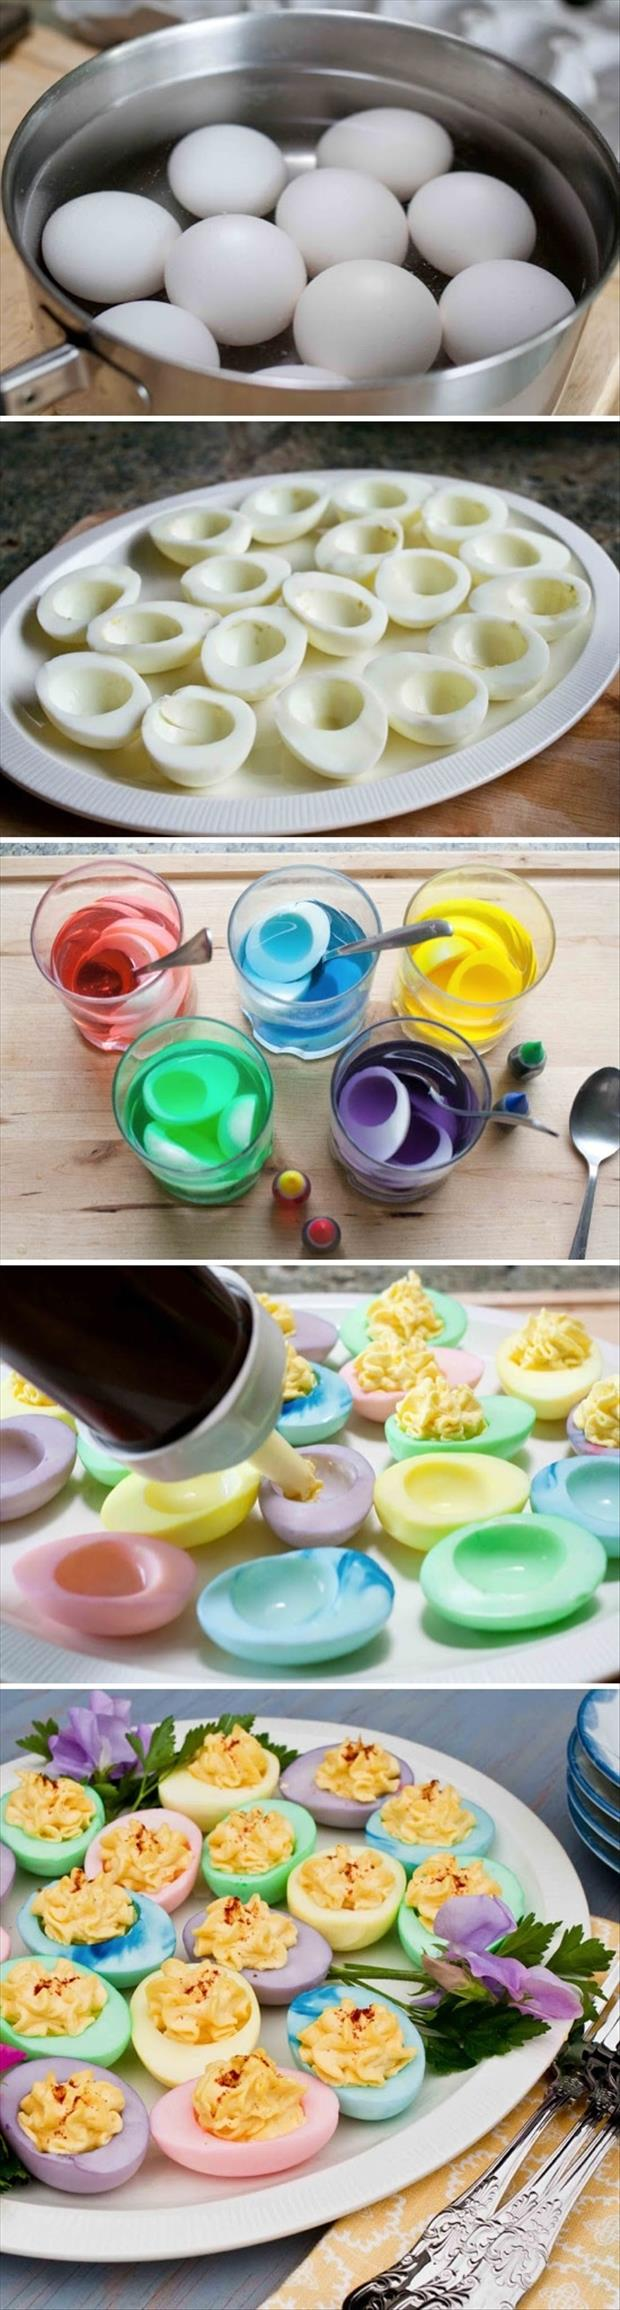 how to make easter deviled eggs